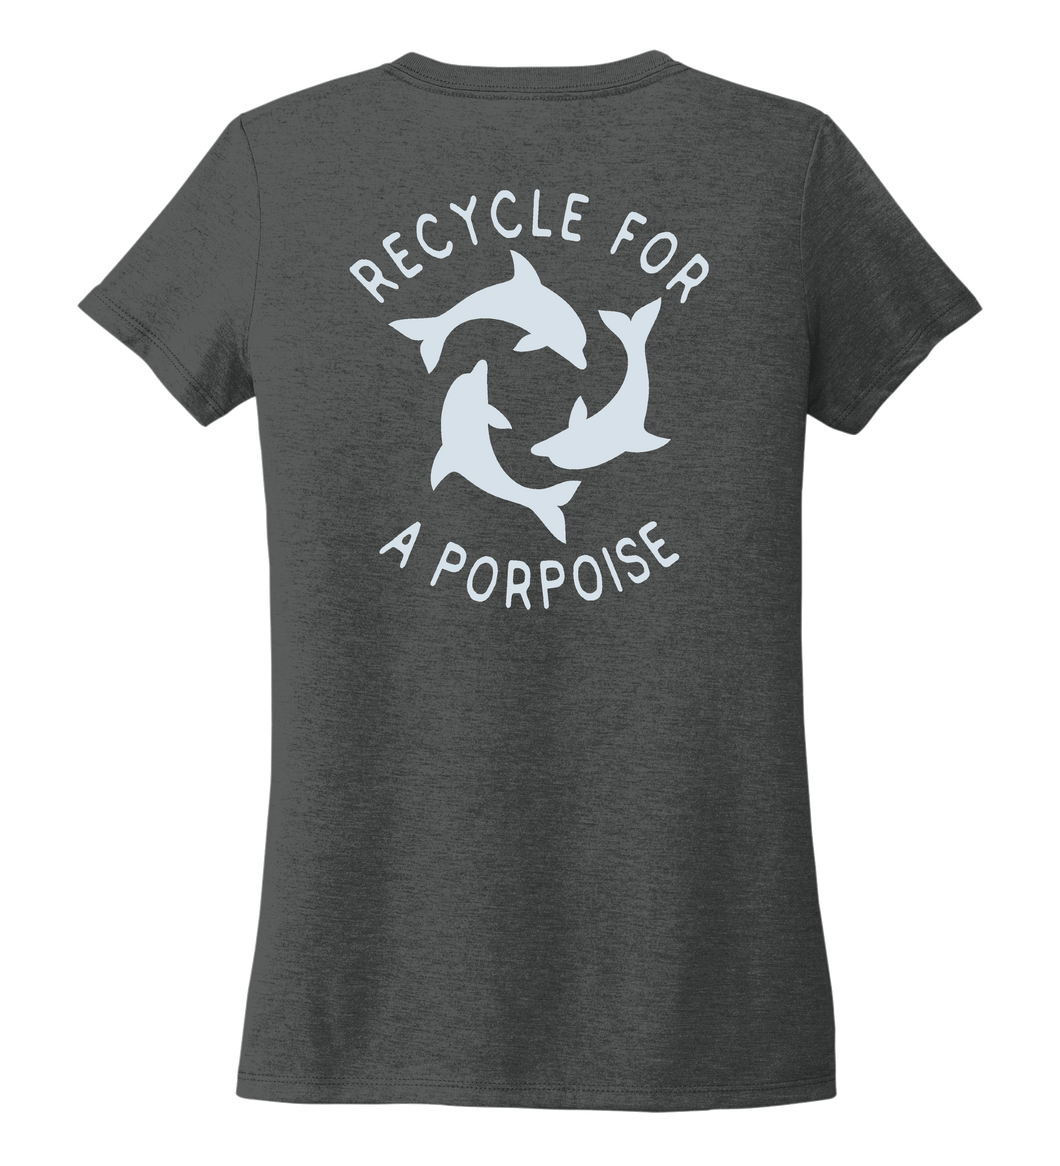 StepChange, Porpoise, Women's V-neck T-shirt in Slate Black